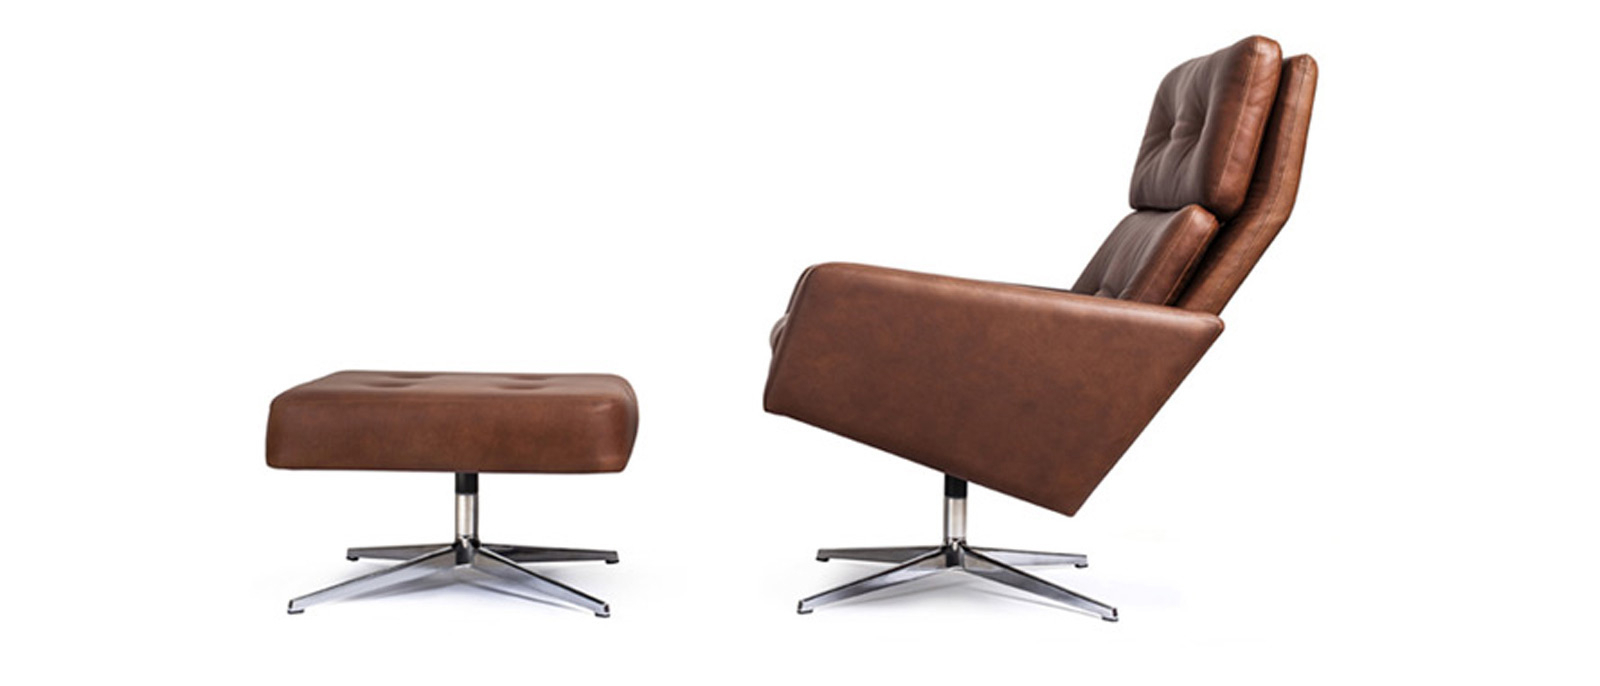 Popular Loft Arm Sofa Chairs With Regard To Loft Furniture (View 4 of 20)